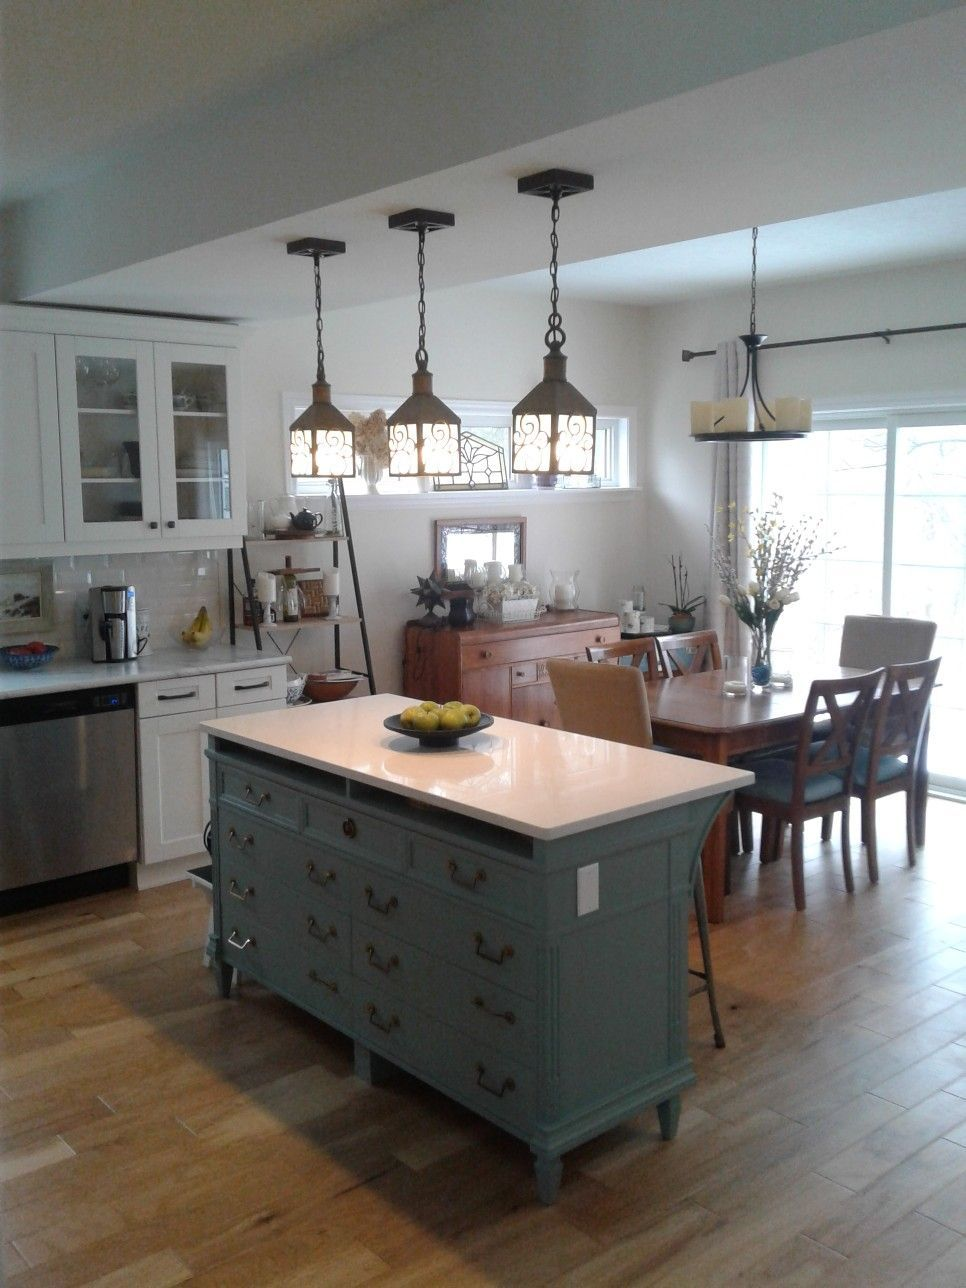 Our kitchen island made from a 9 drawer thrift store dresser ...